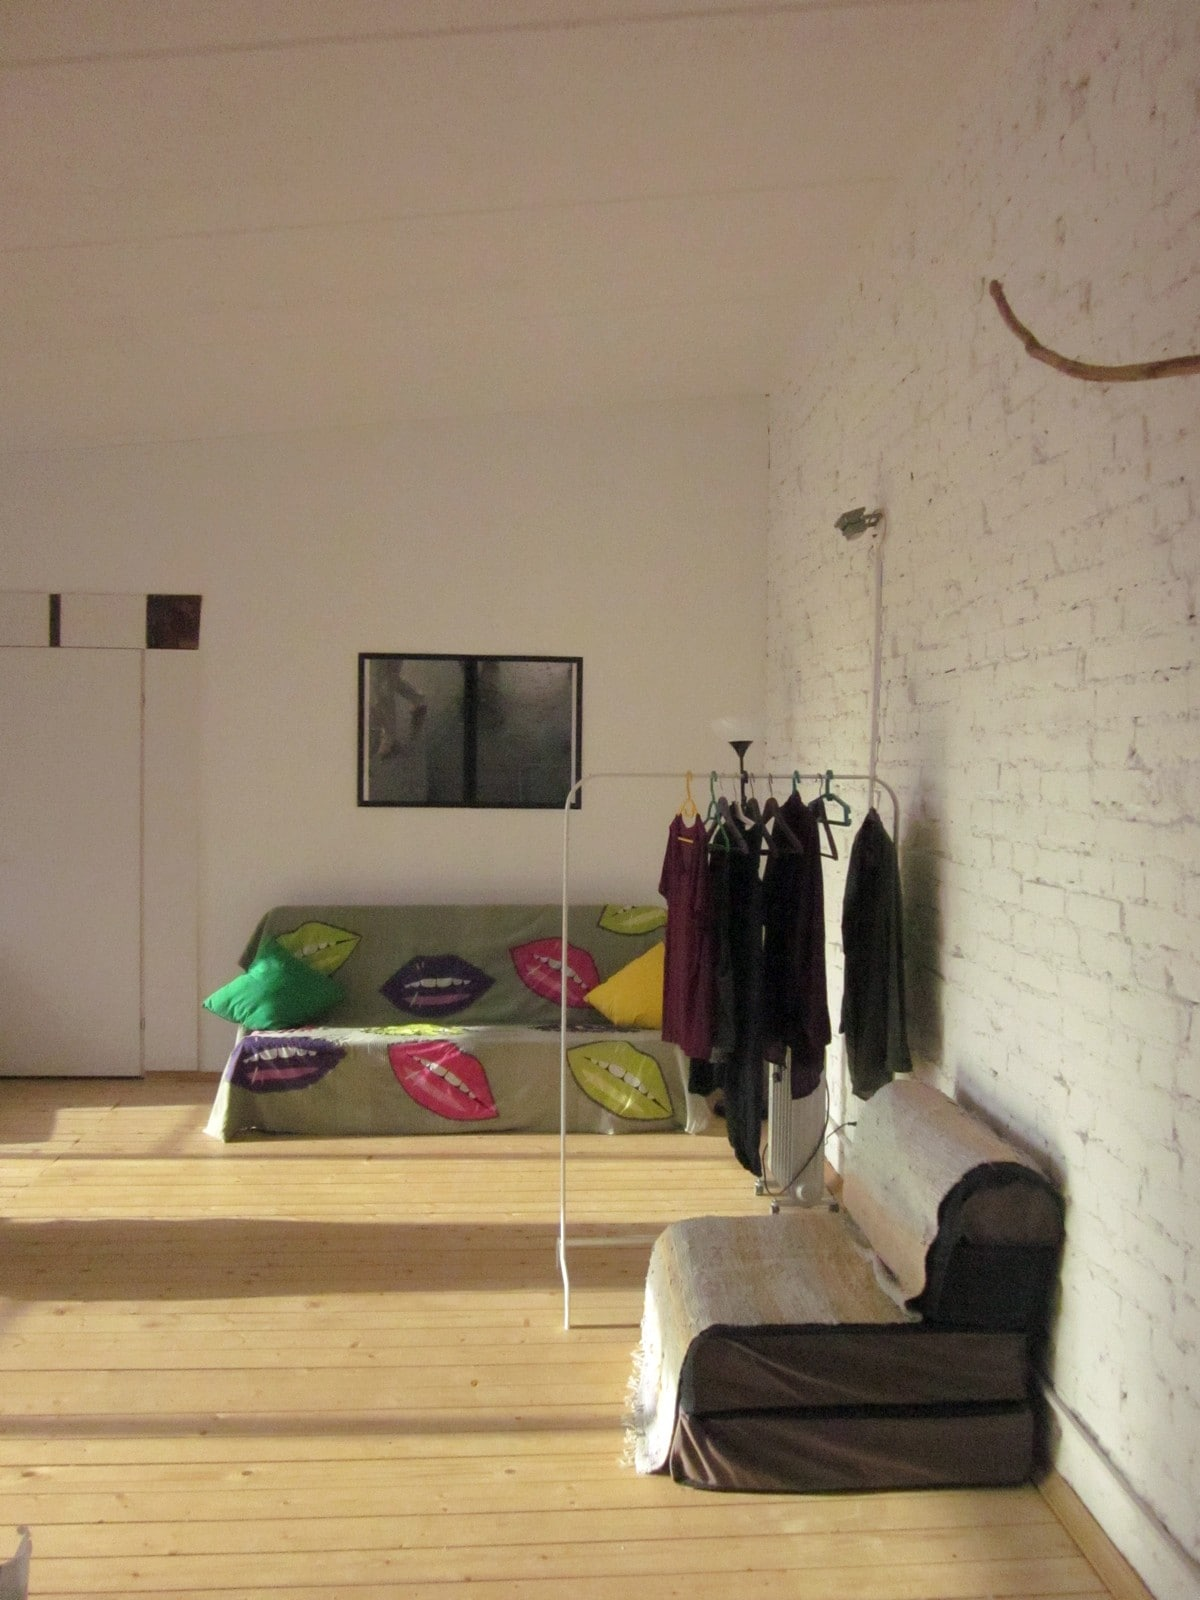 In our loft inclined ceilings in height almost 4 metres and are a lot of sunlight